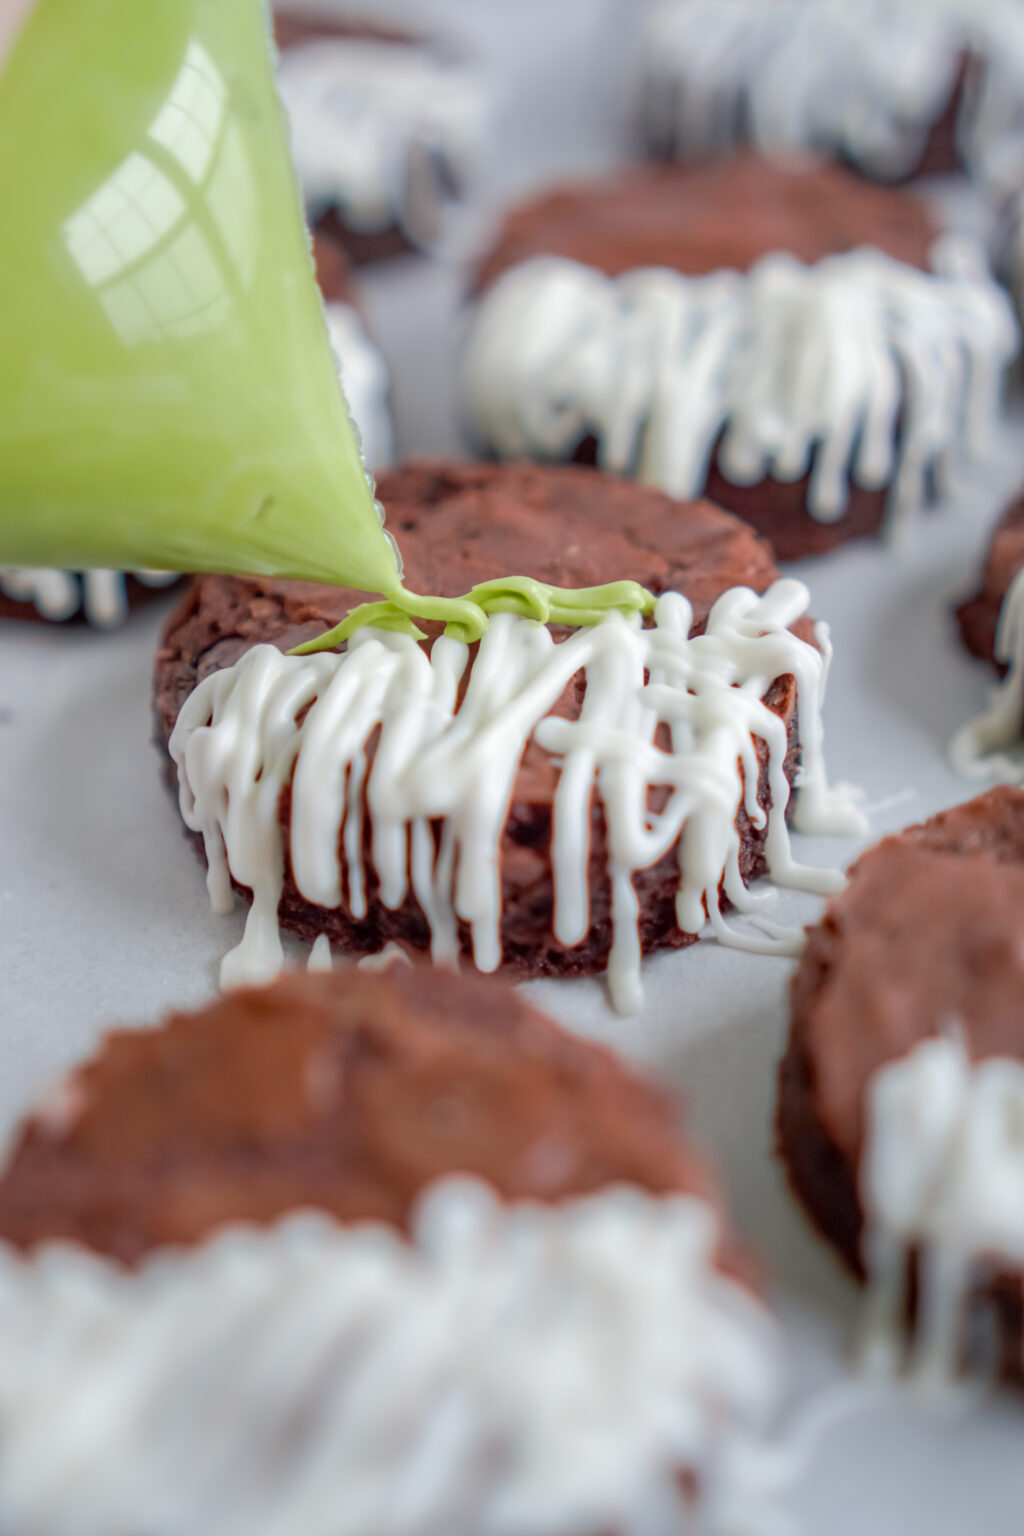 green chocolate being drizzled onto brownie